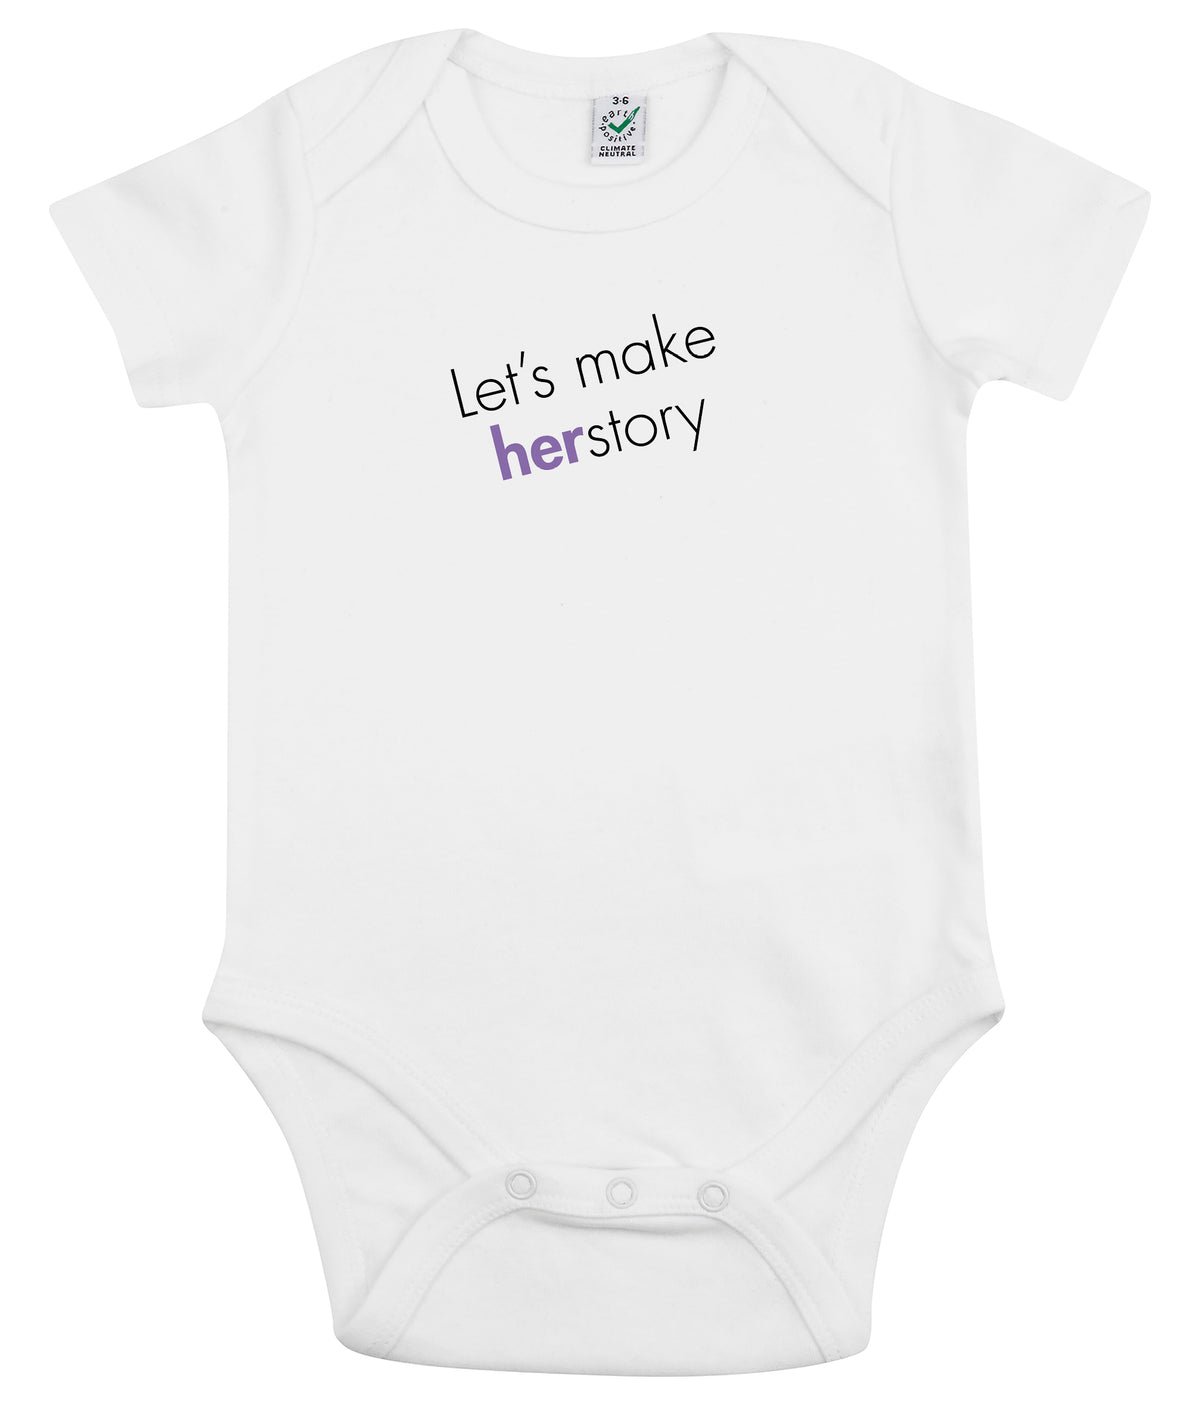 Let's Make Herstory Organic Combed Cotton Babygrow White